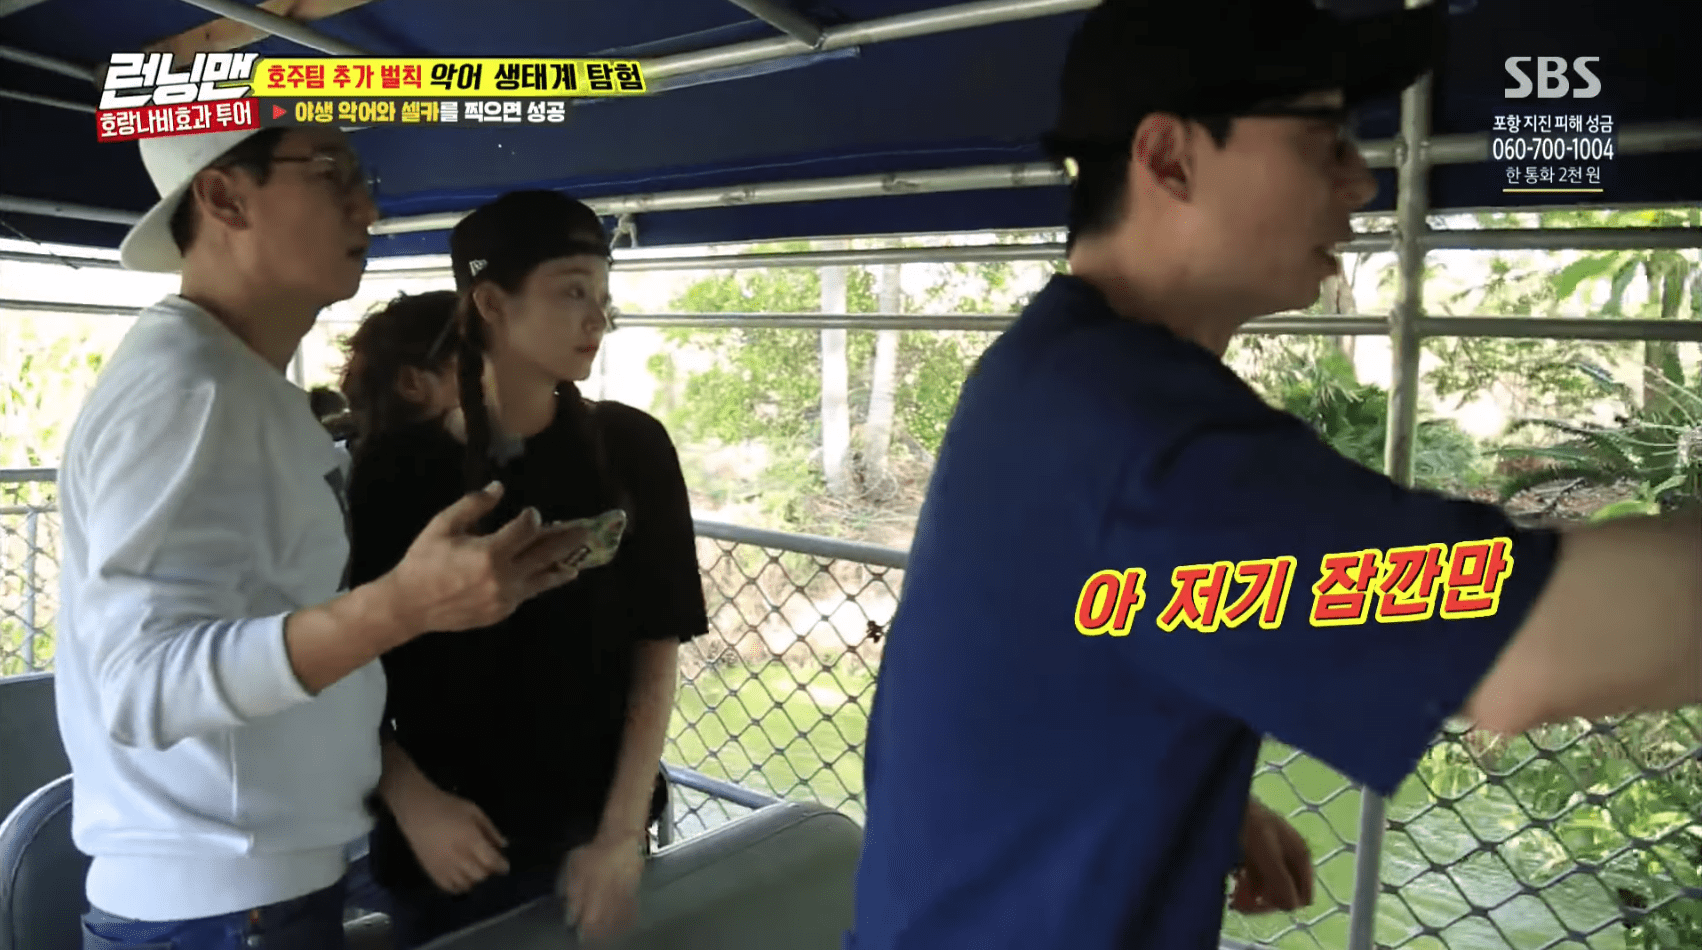 """Yoo Jae Suk Sends """"Running Man"""" Cast And Crew Into A Panic After Dropping Camera Into River With Crocodiles"""